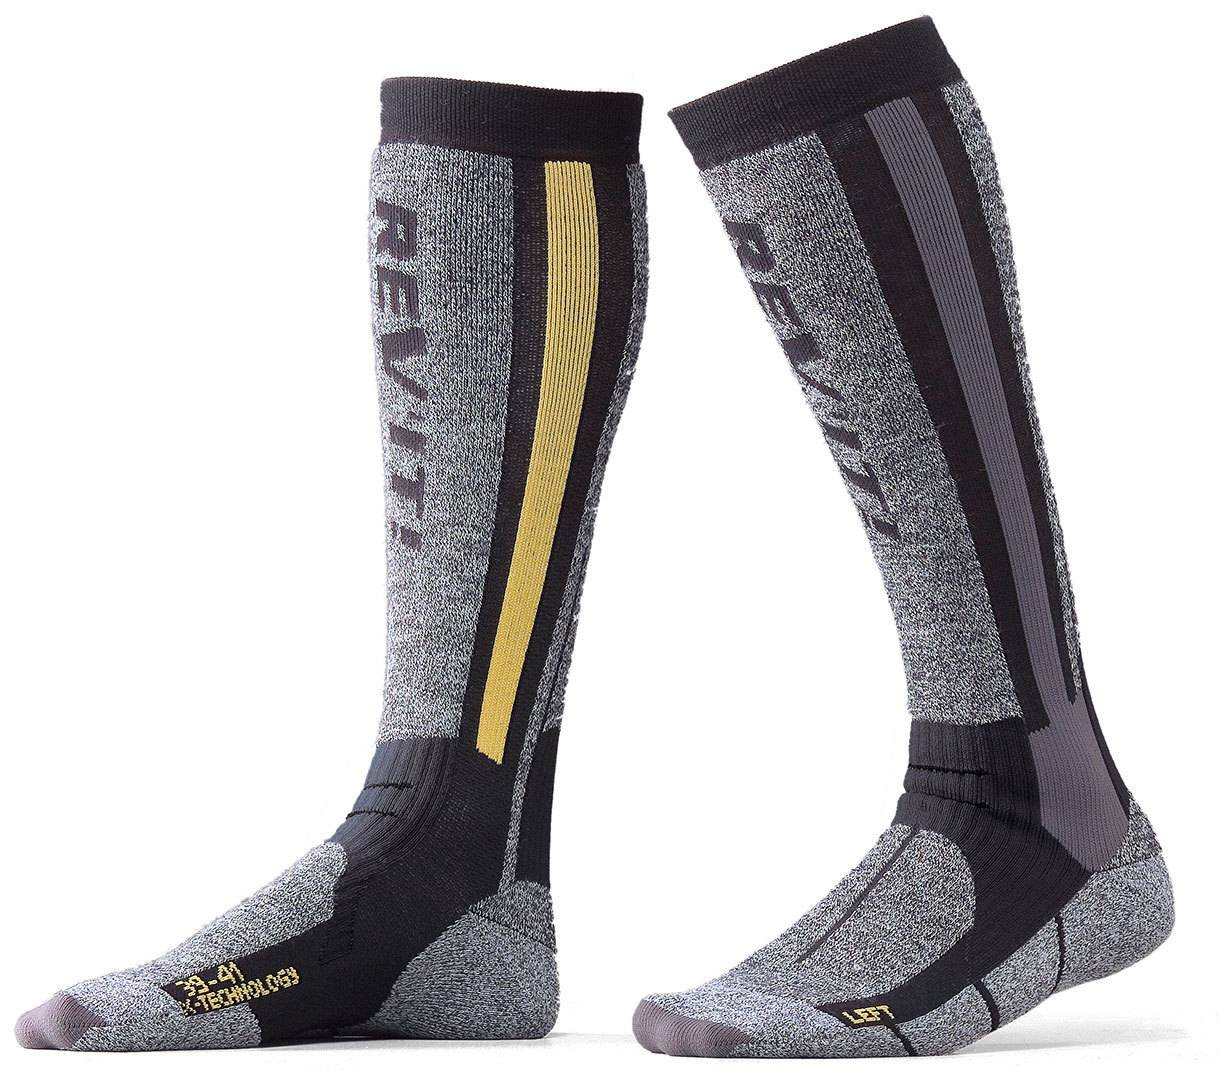 Revit Tour Calcetines de invierno Negro 35-38